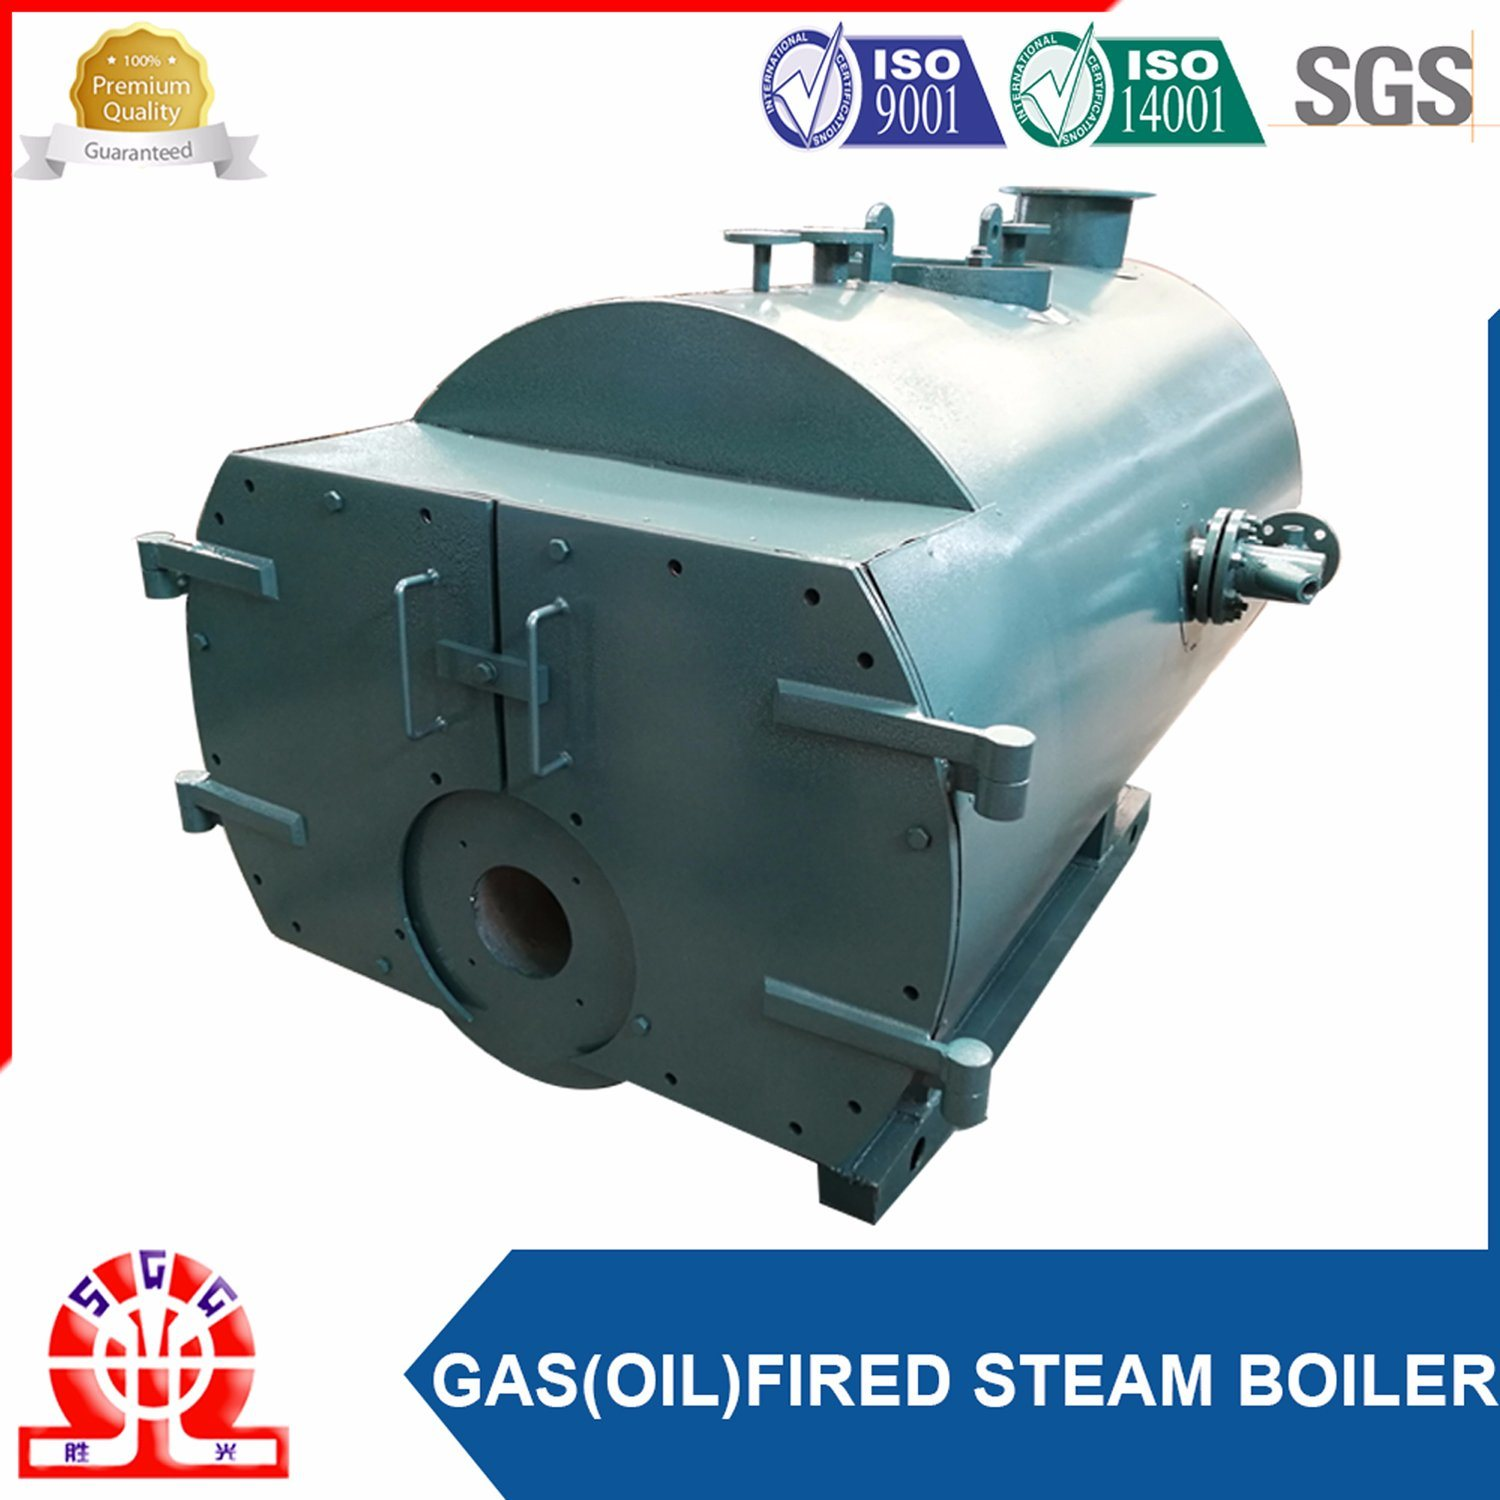 China 1 Ton Gas Fired Steam Boiler with Burner - China Gas Boiler ...